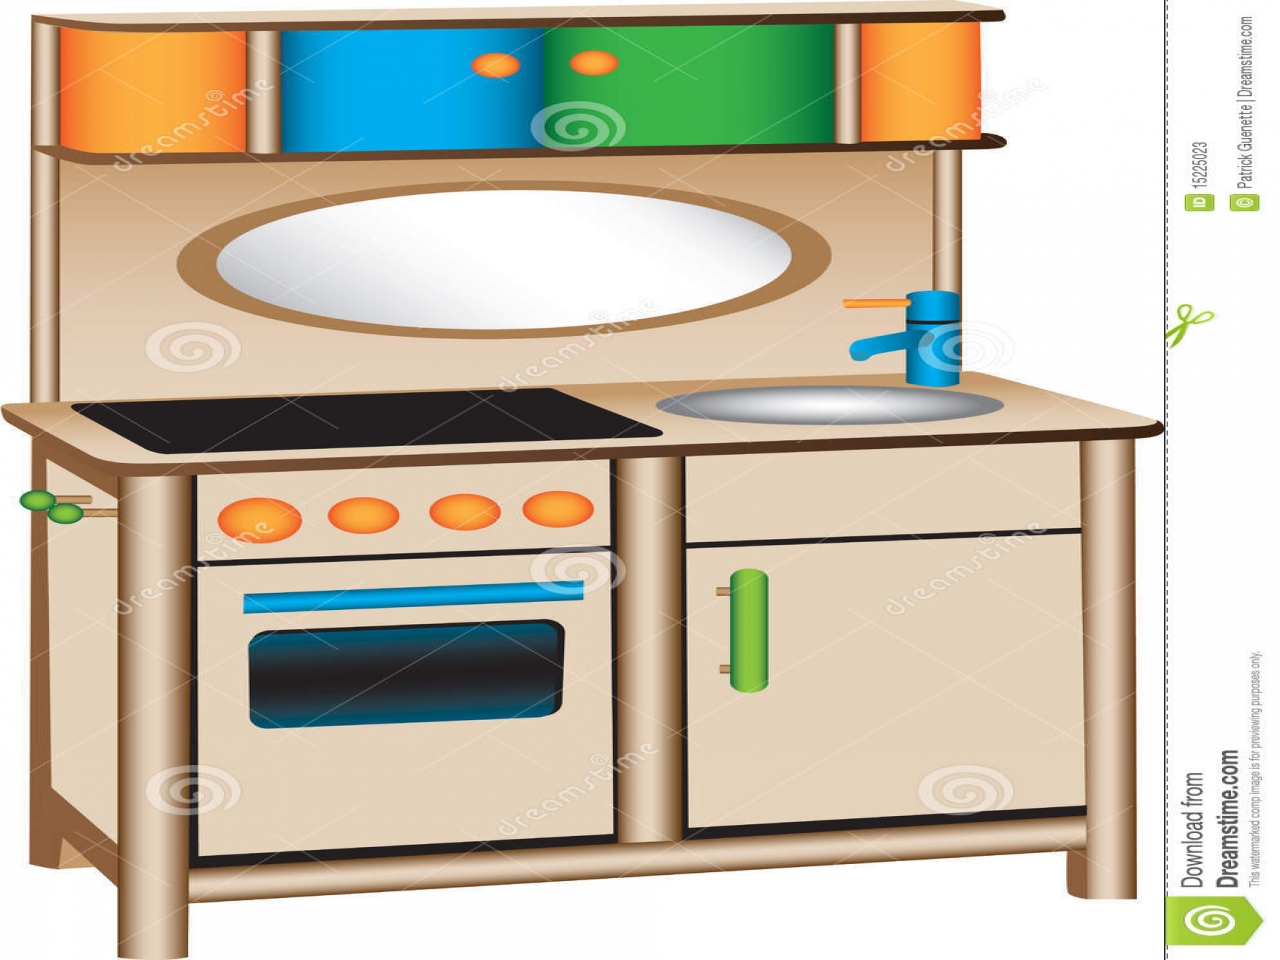 The Kitchen clipart classroom centers Classroom Classroom Trash And Trash